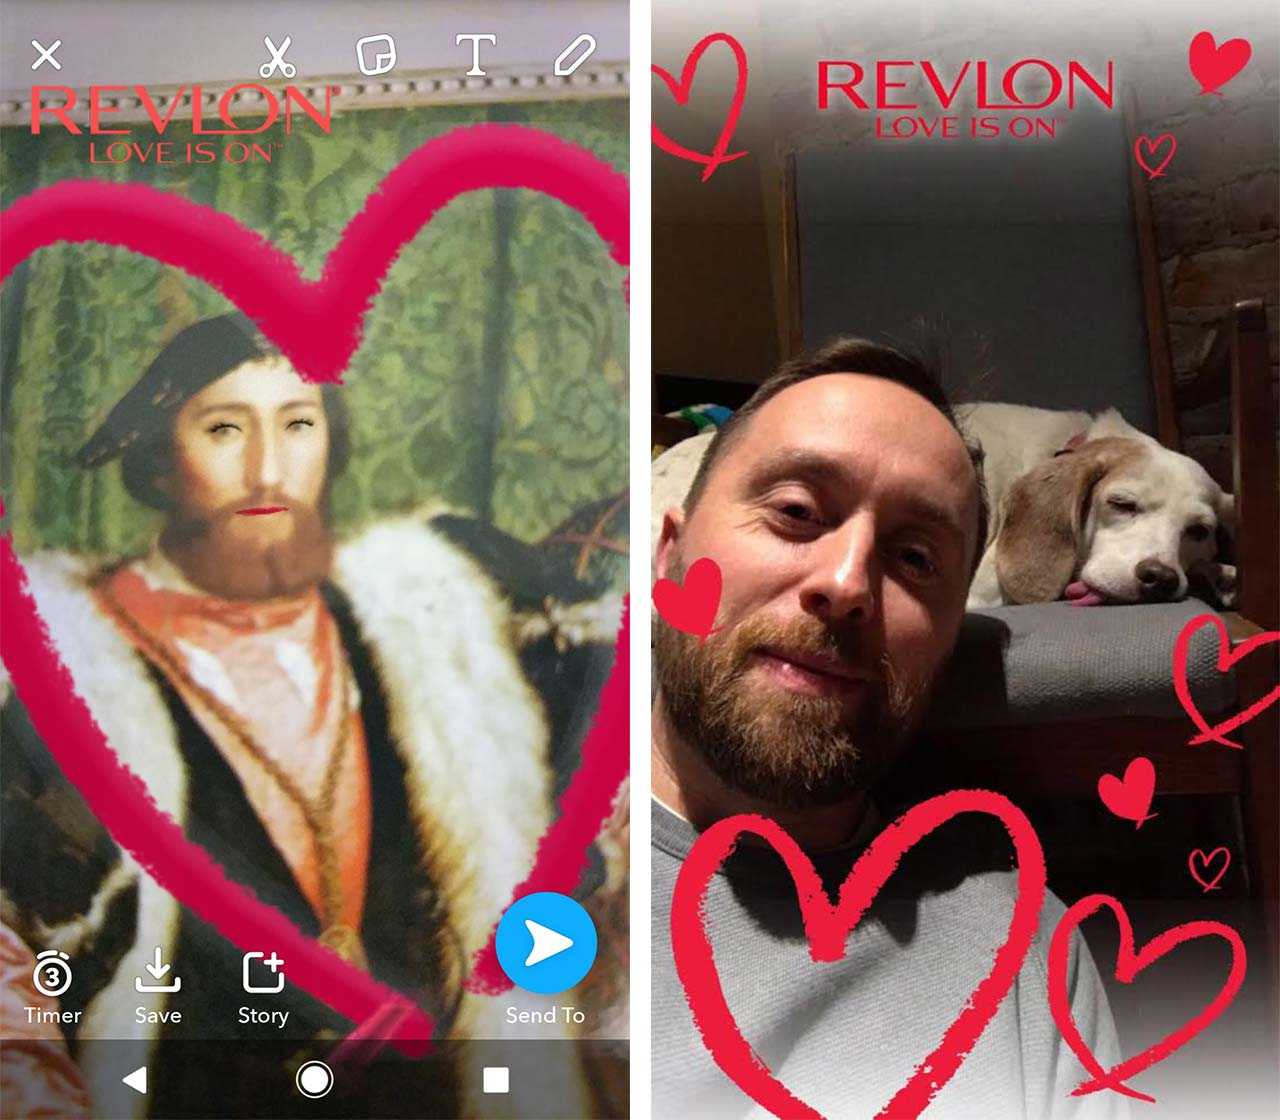 snapchat revlon valentines lens of medieval man with lipstick and geofilter of man and sleeping dog - snapchat makeup lens